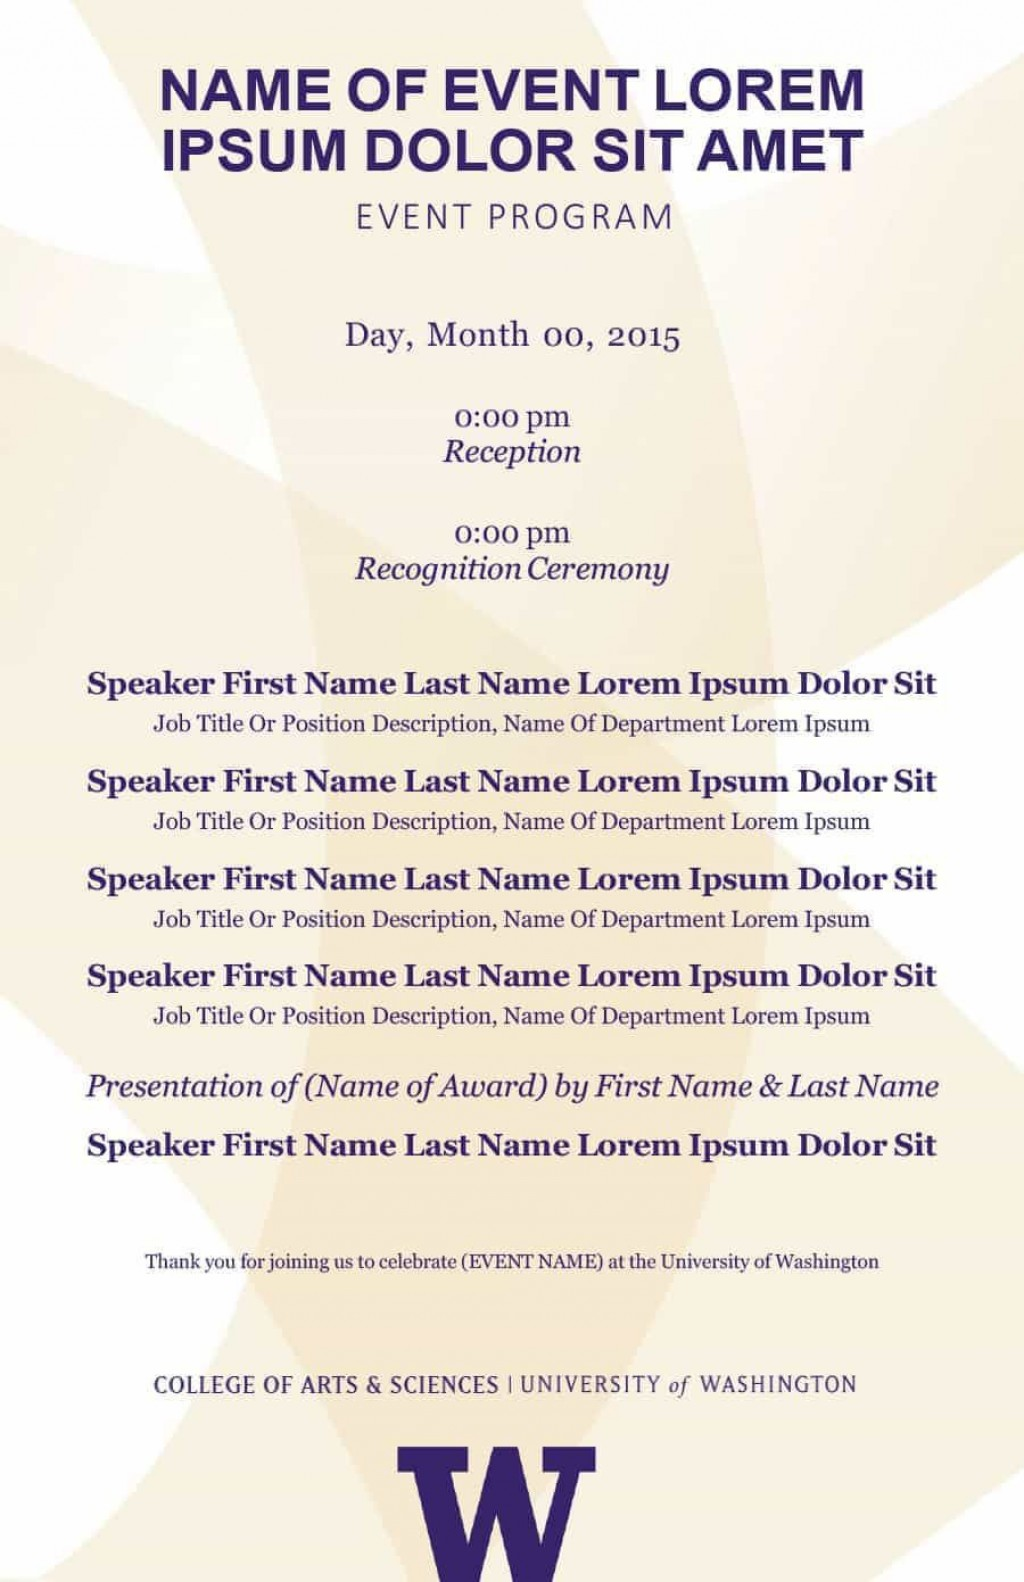 004 Rare Free Event Program Template Picture  Schedule Psd WordLarge